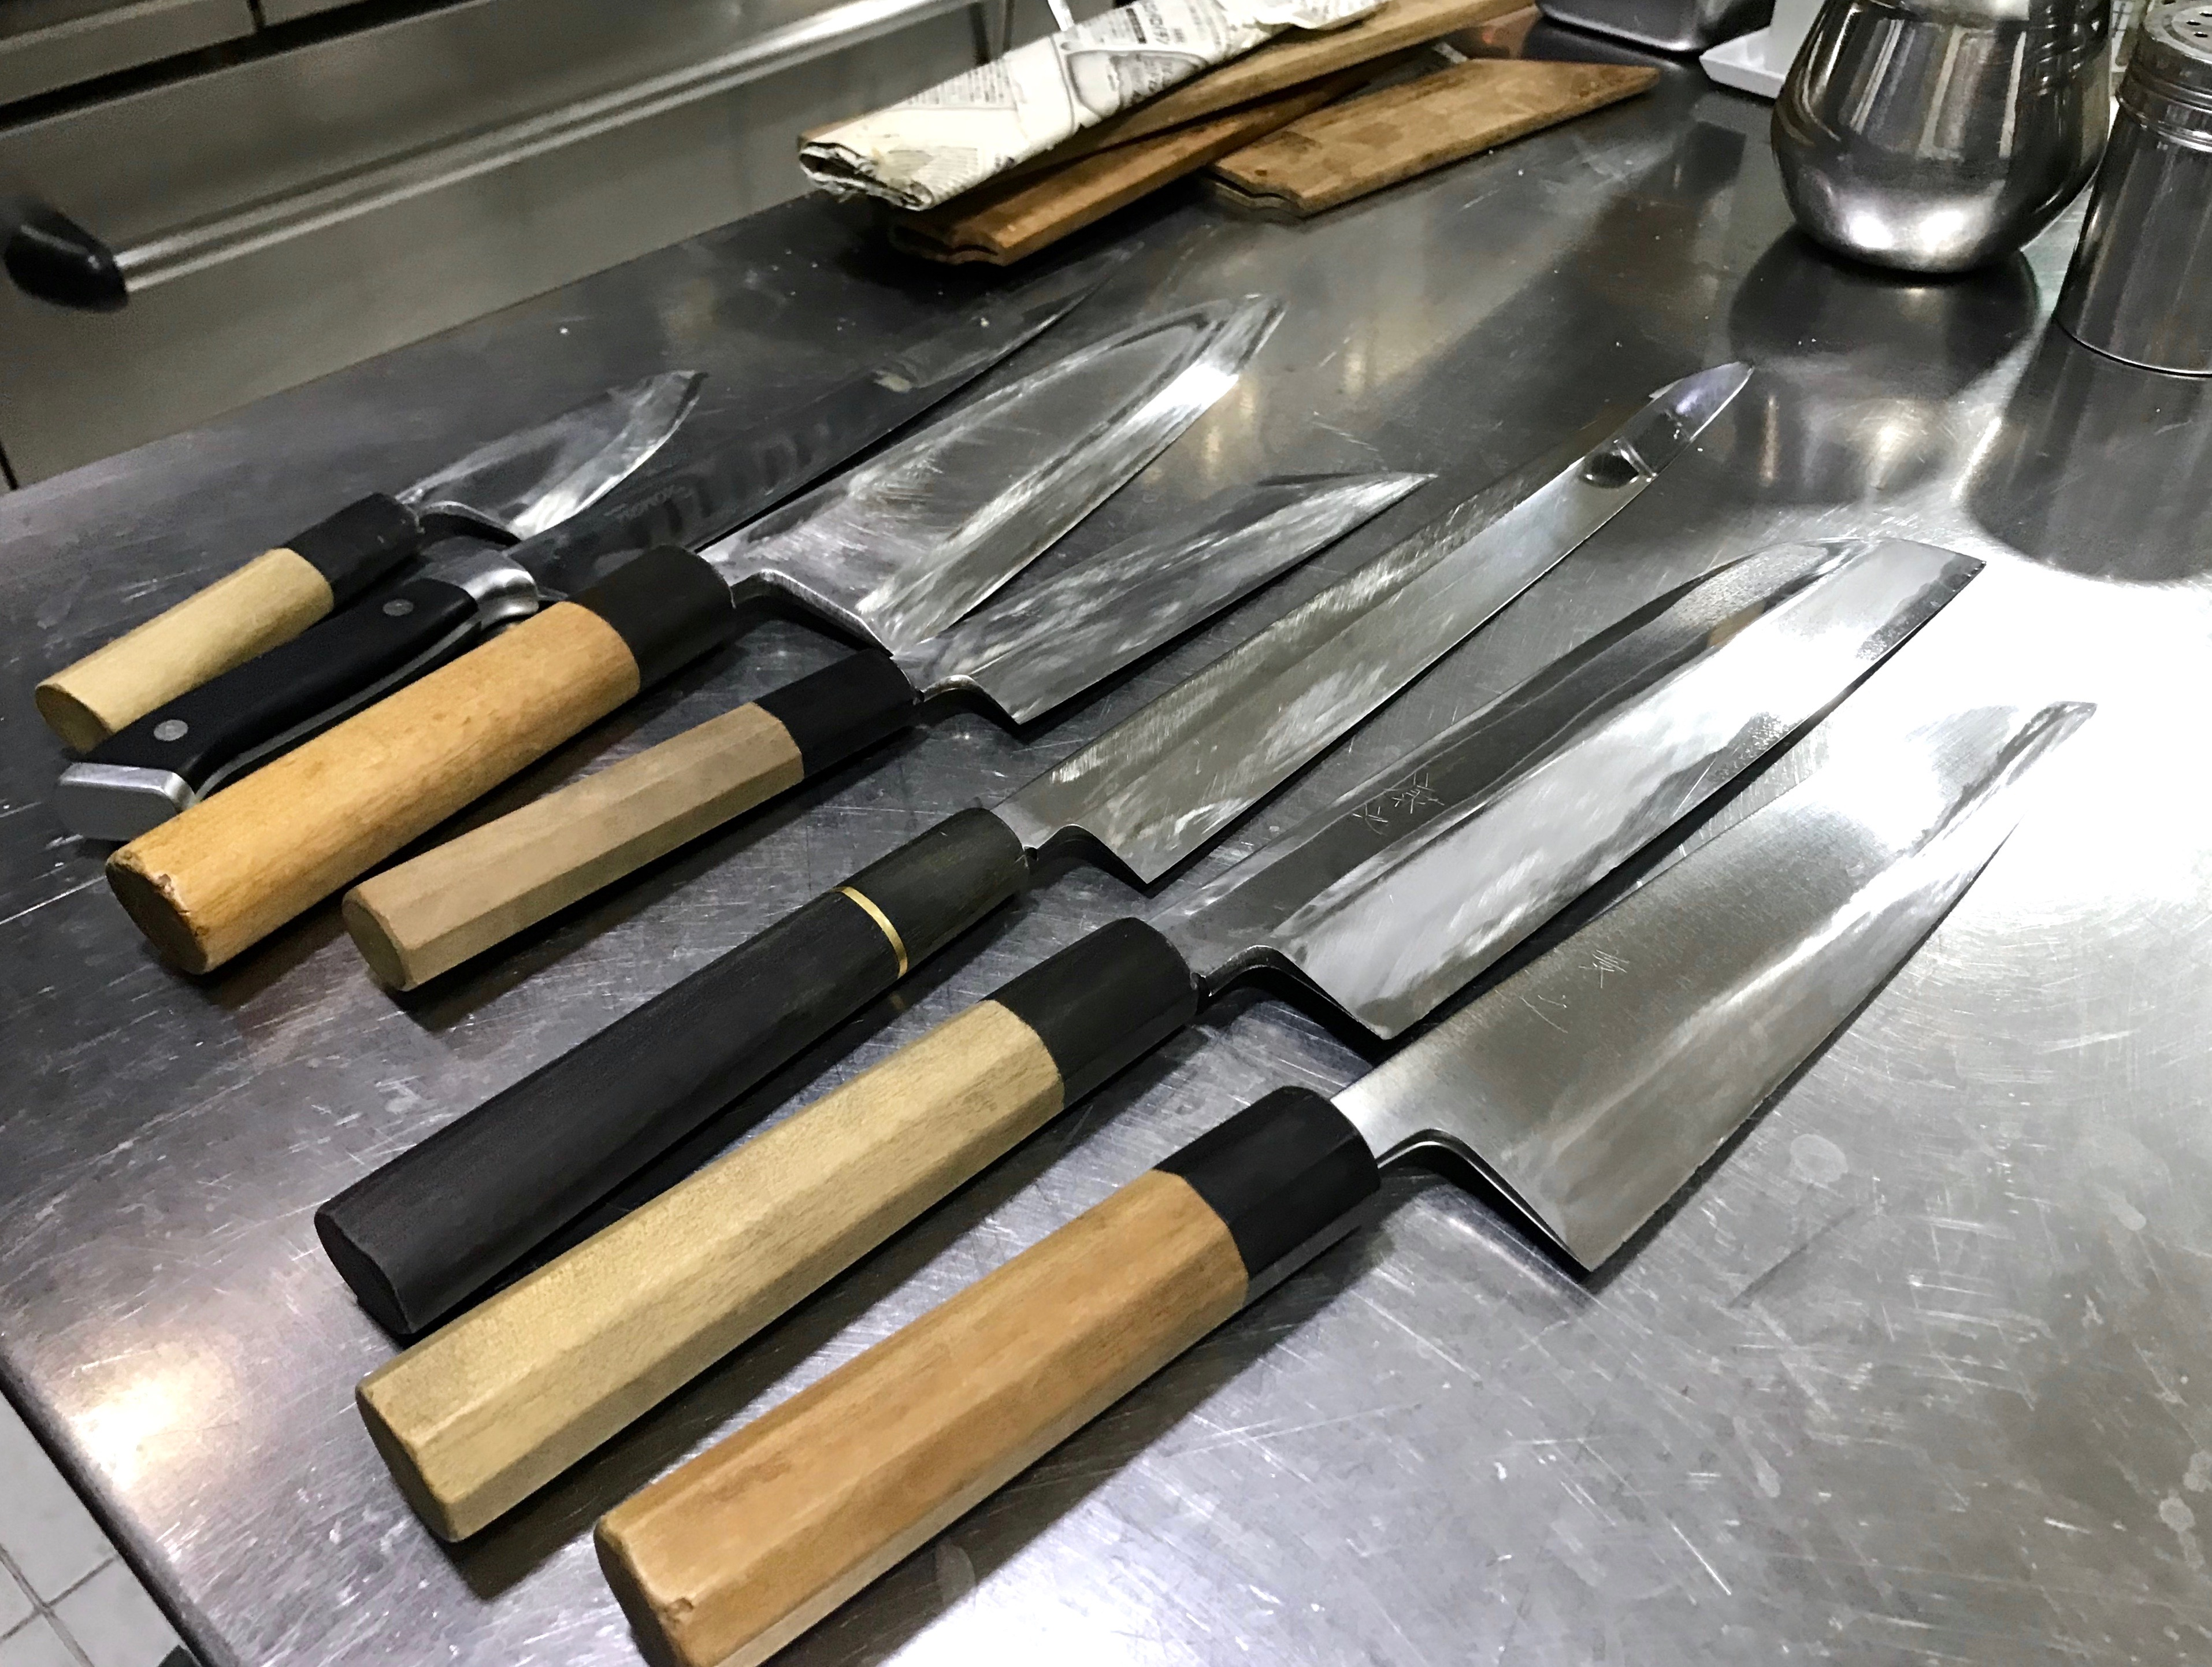 Set of professional chef's knives